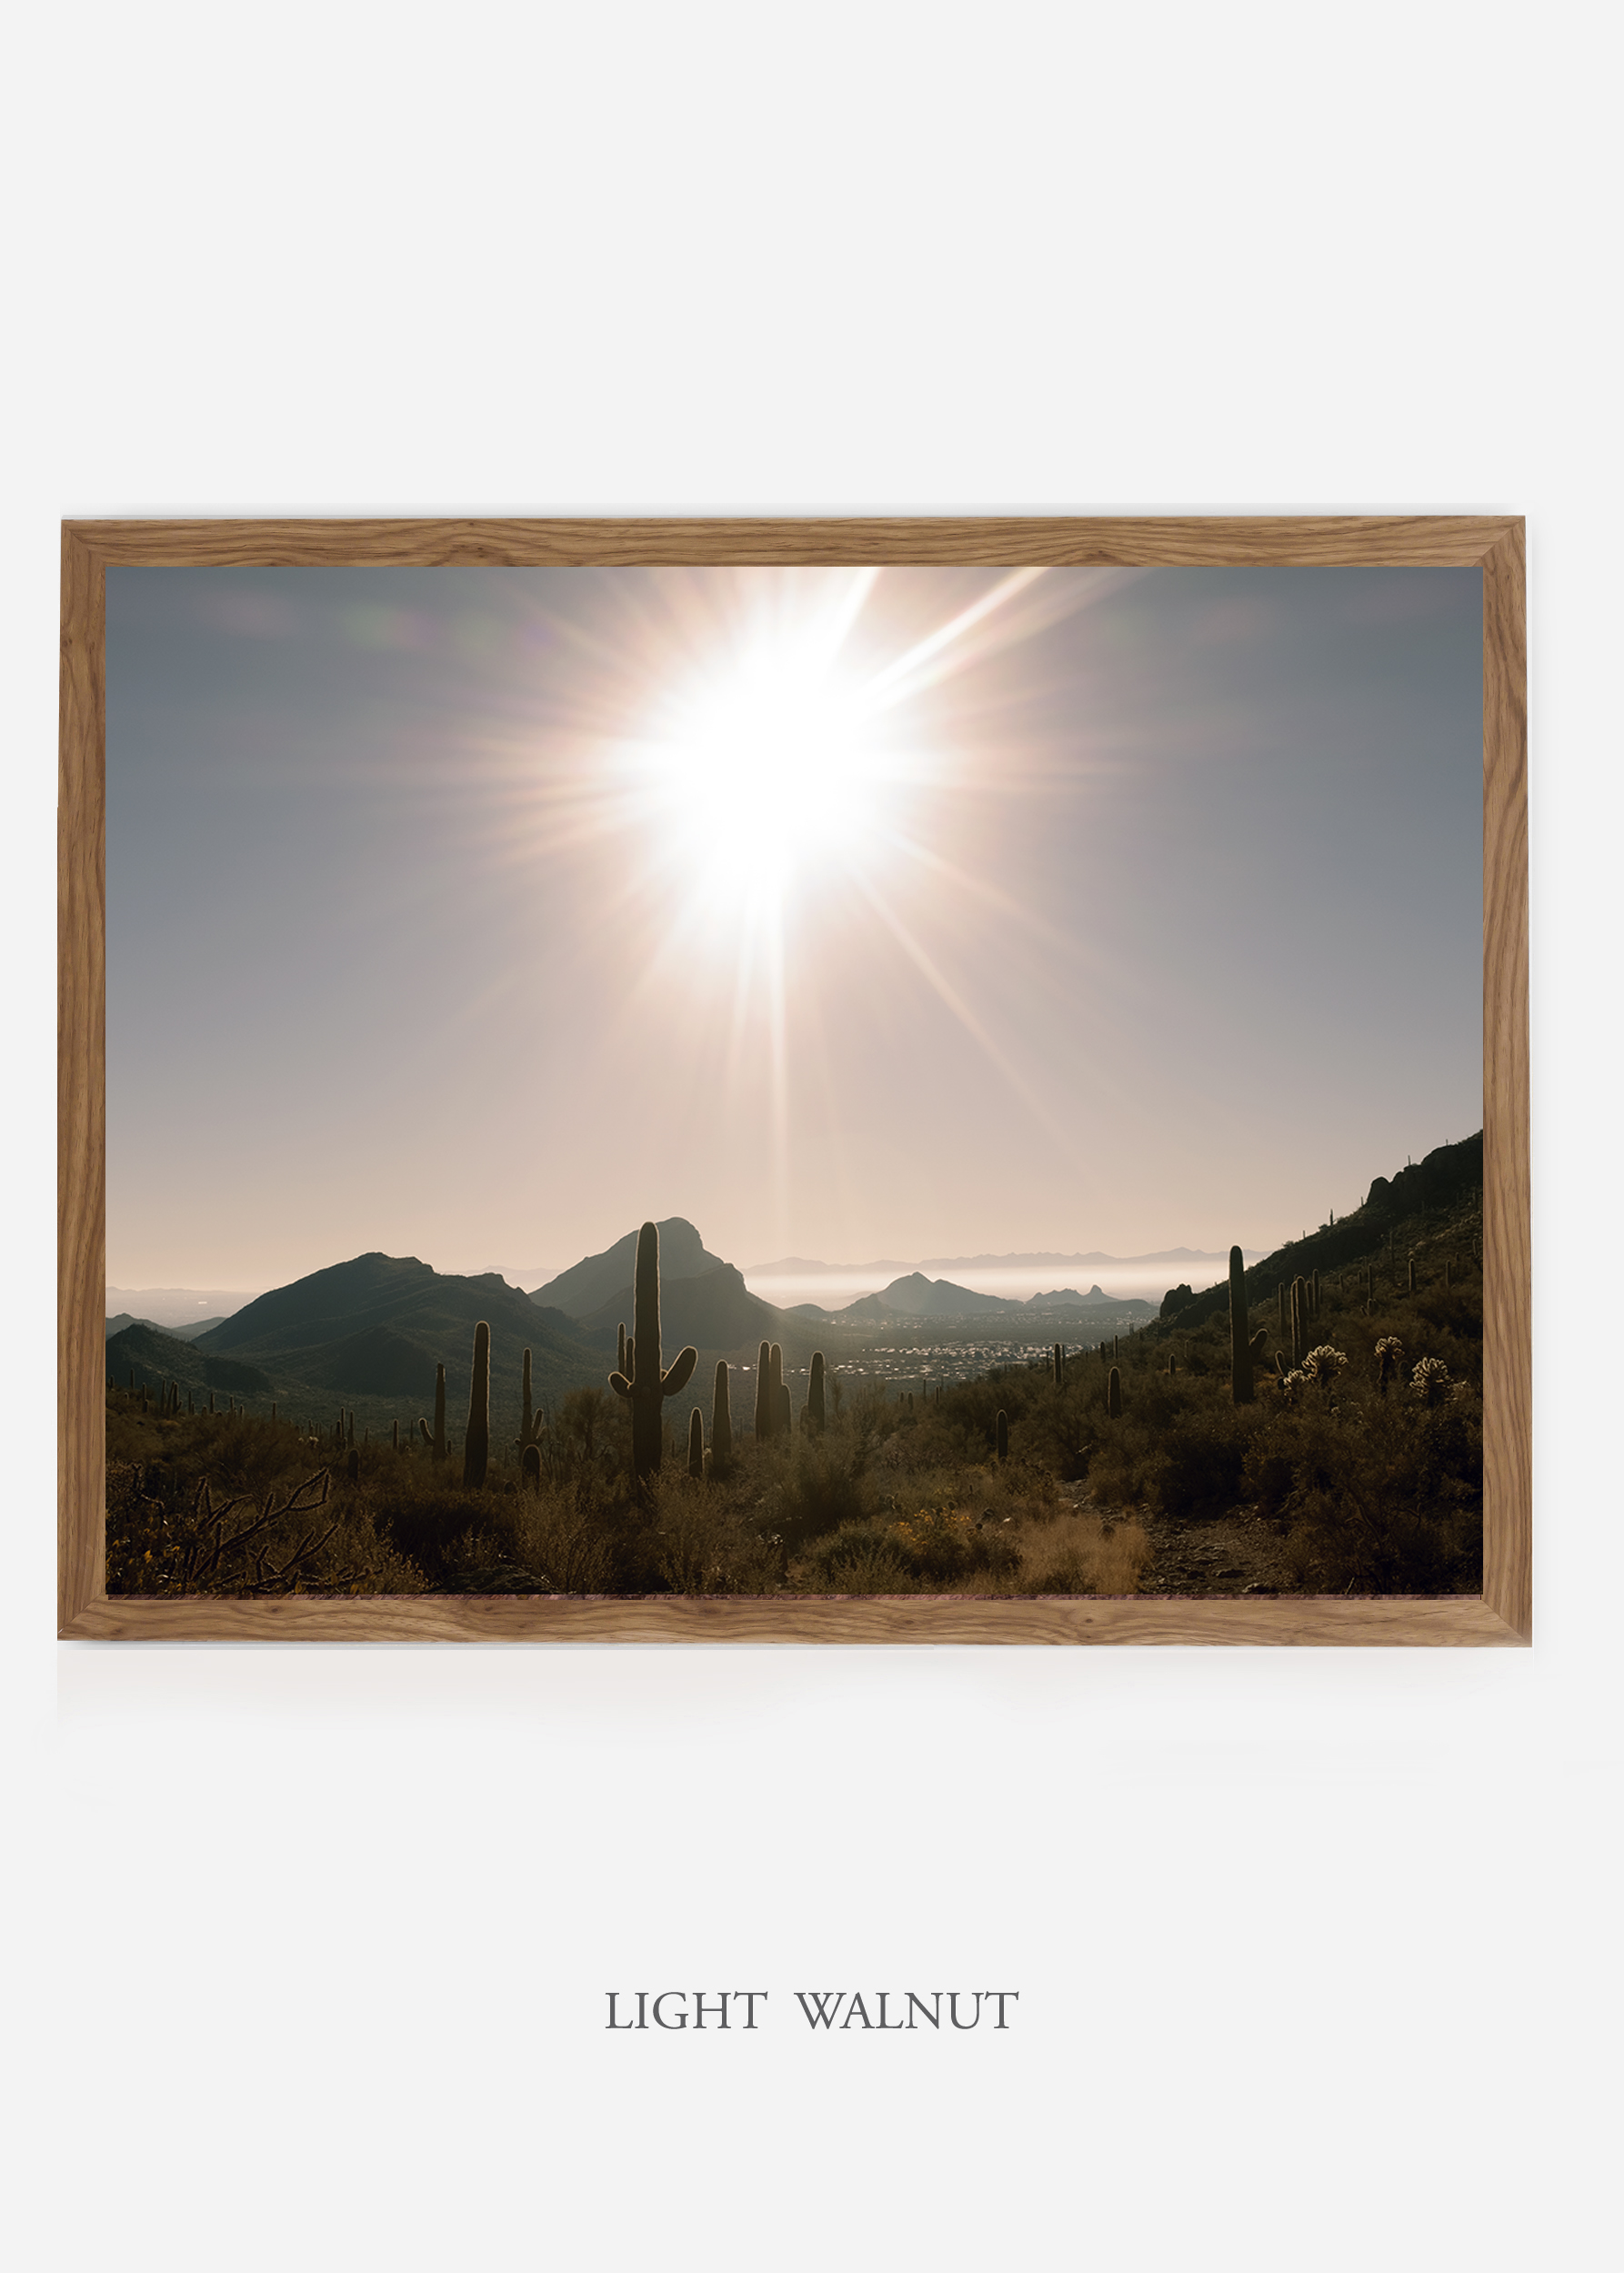 nomat_lightwalnutframe-saguaroNo.15-wildercalifornia-art-wallart-cactusprint-homedecor-prints-arizona-botanical-artwork-interiordesign.jpg